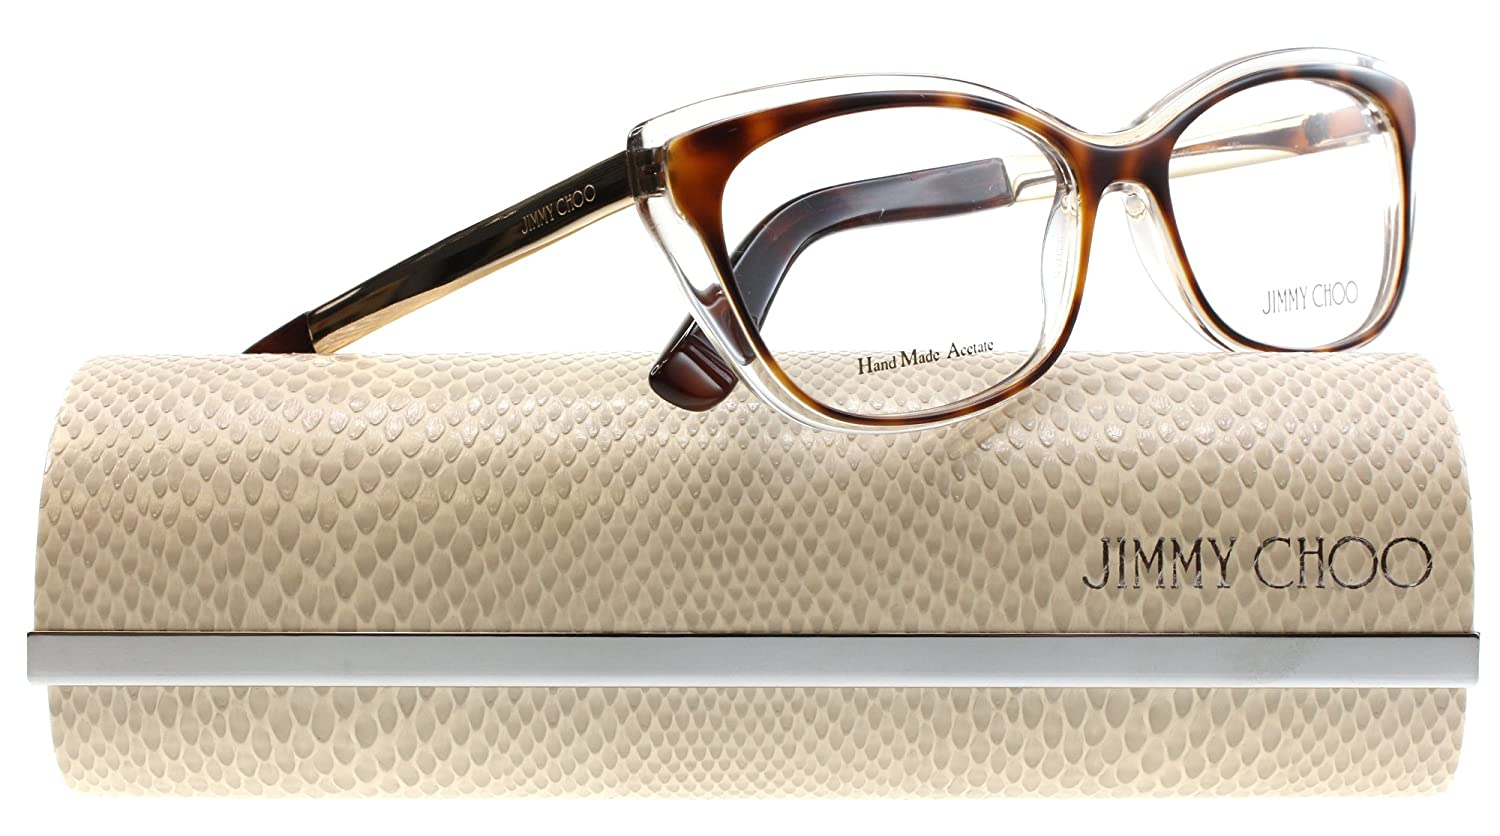 b419f879a588 Jimmy Choo 126 Eyeglasses Color 019W 00 at Amazon Women's Clothing store: